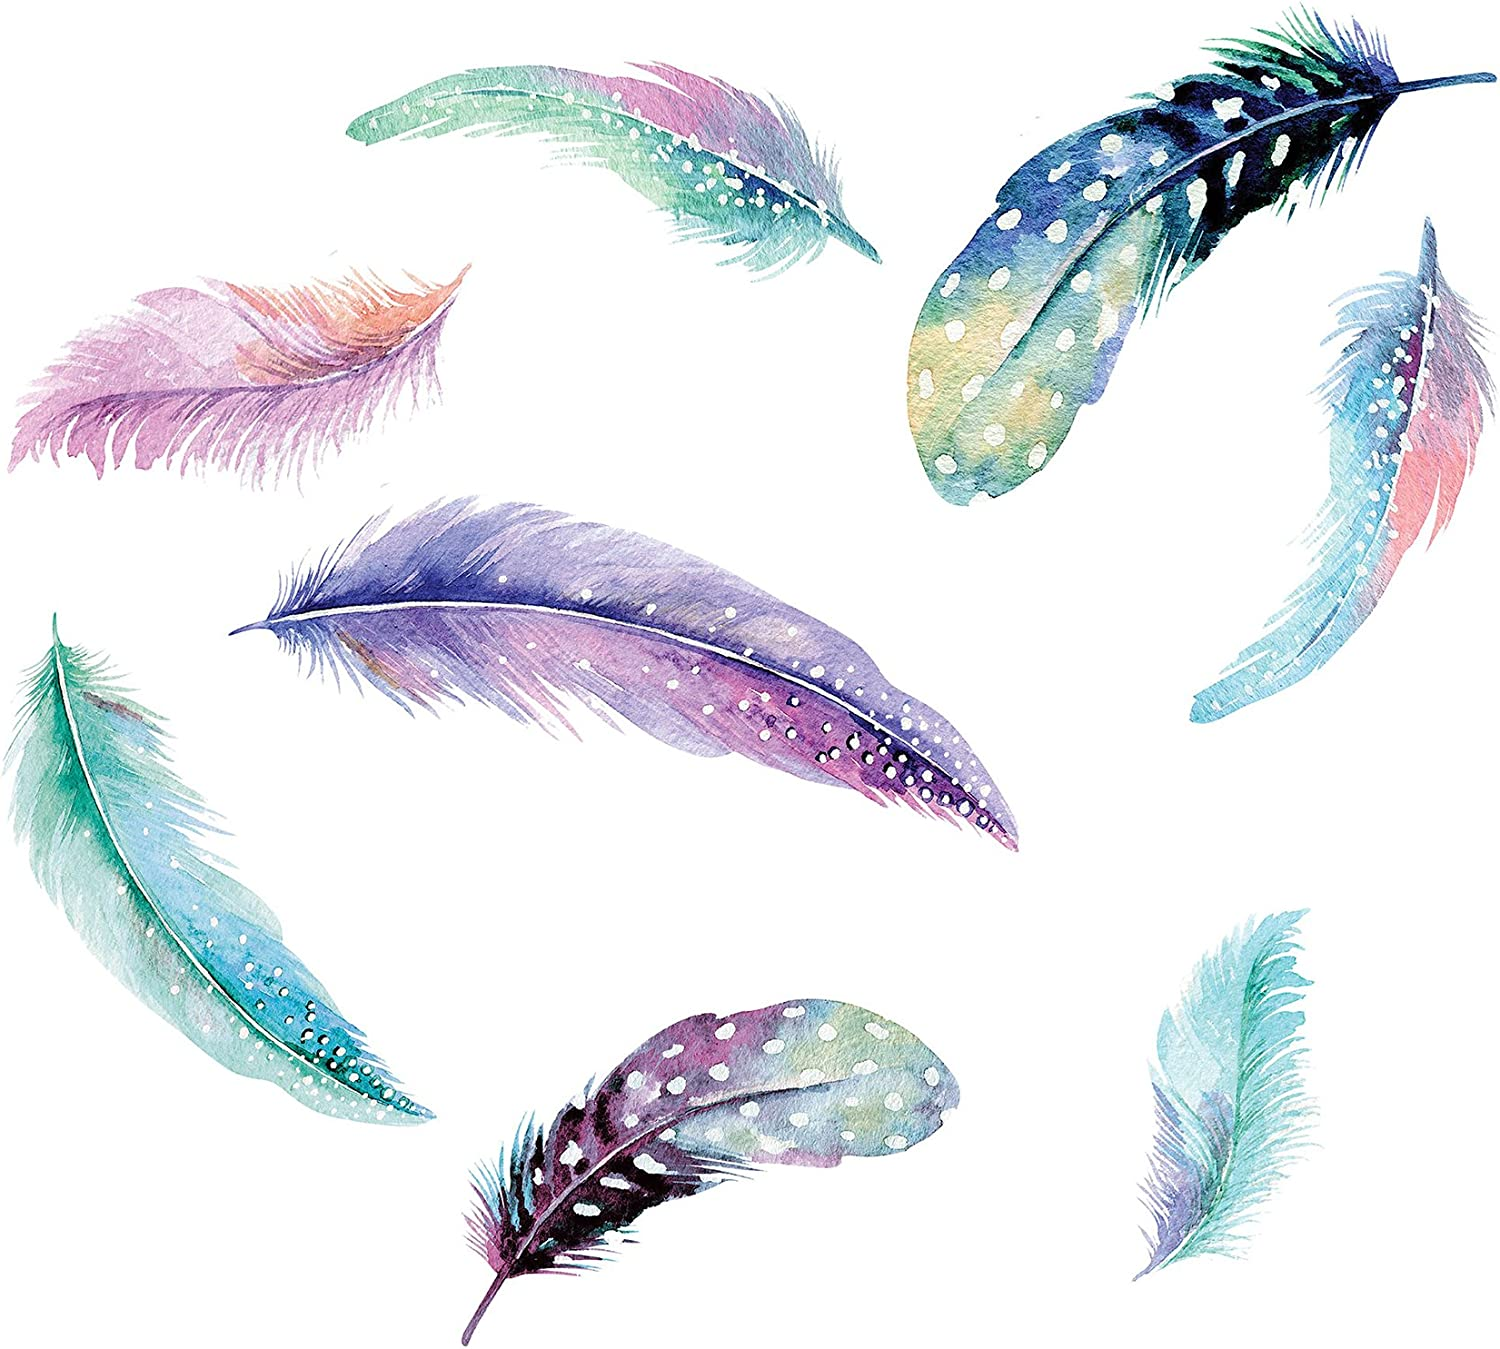 WallPops DWPK2462 Celestial Feathers Wall Art Kits, Multi-Color